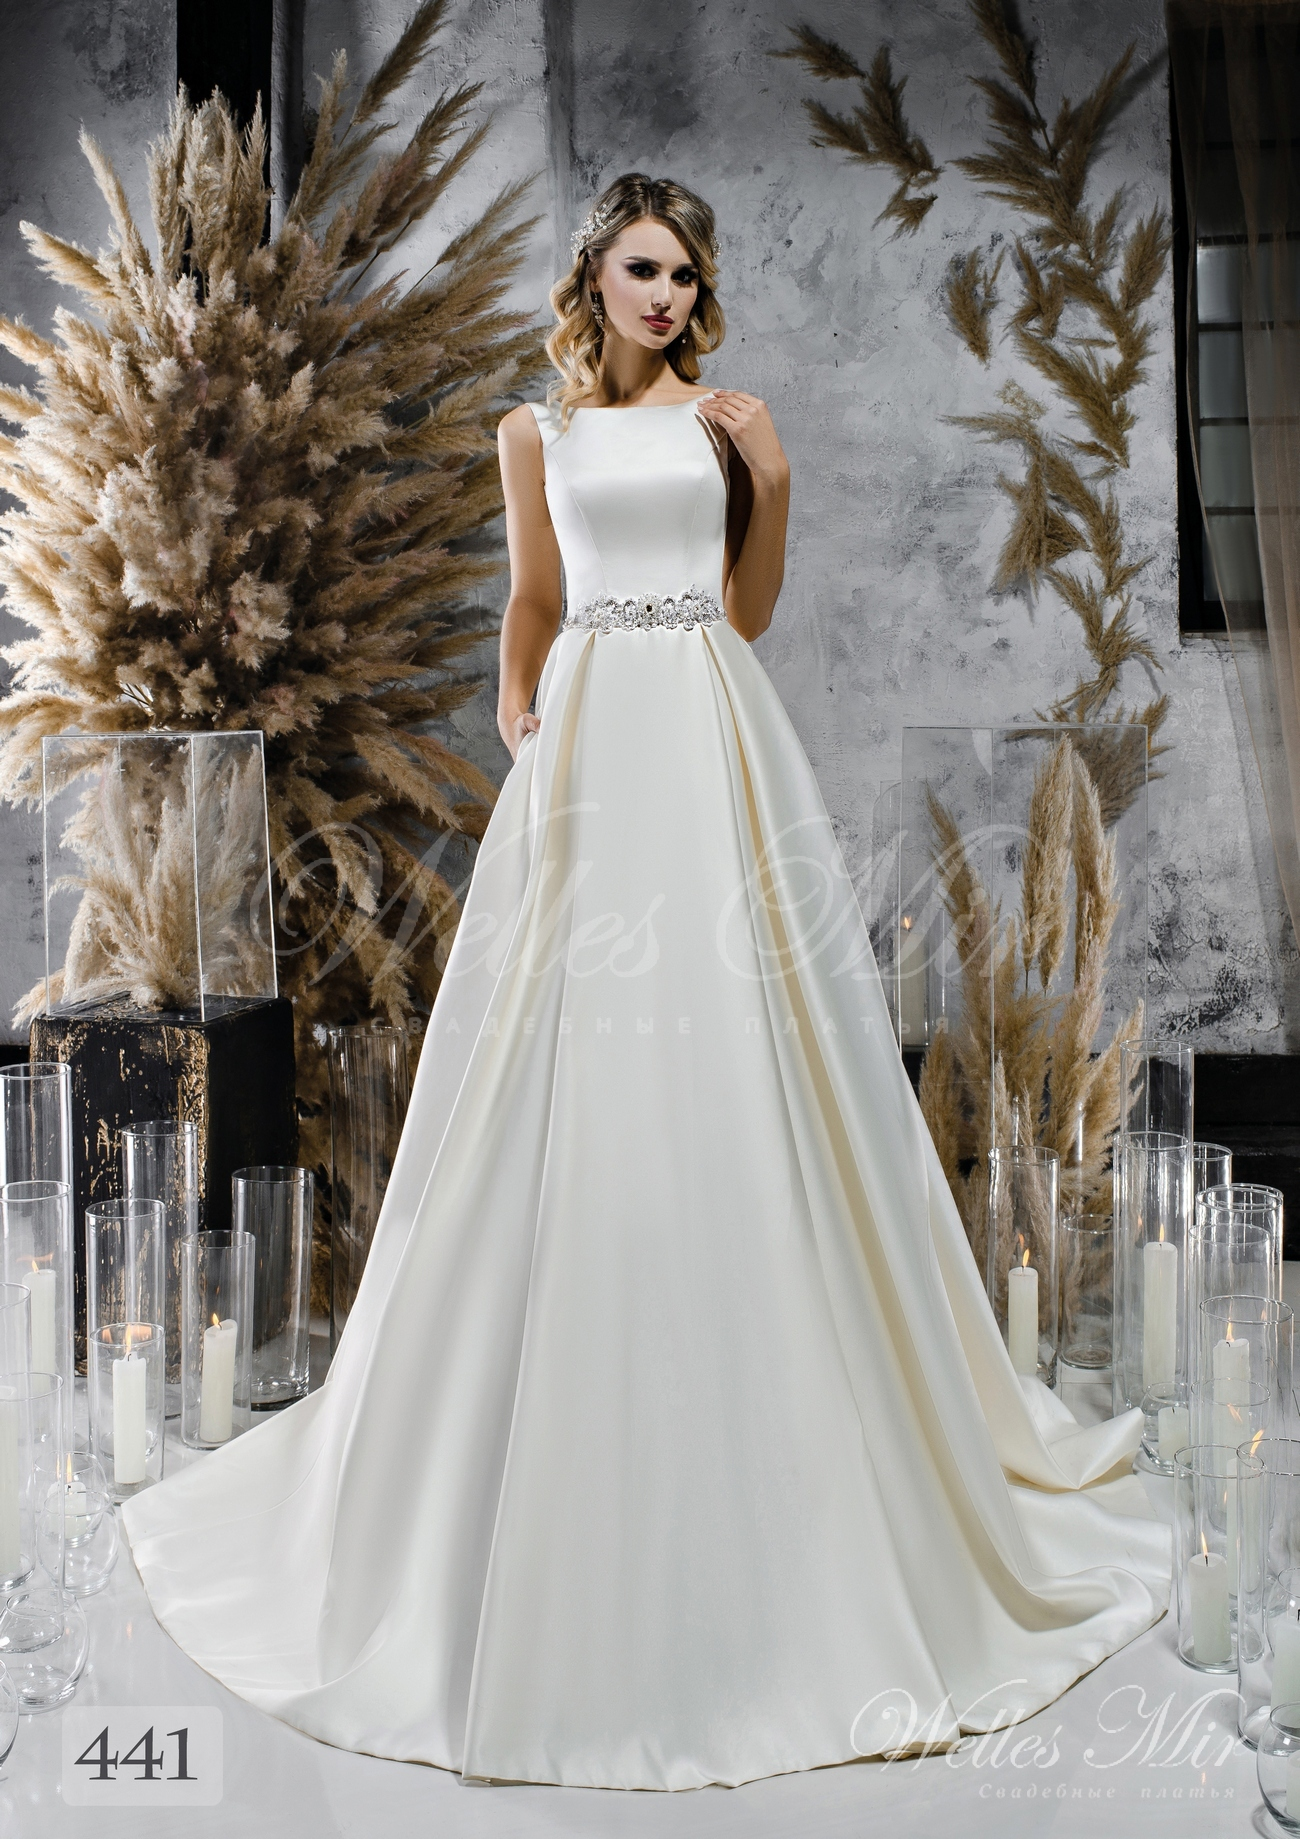 Wedding dresses 441